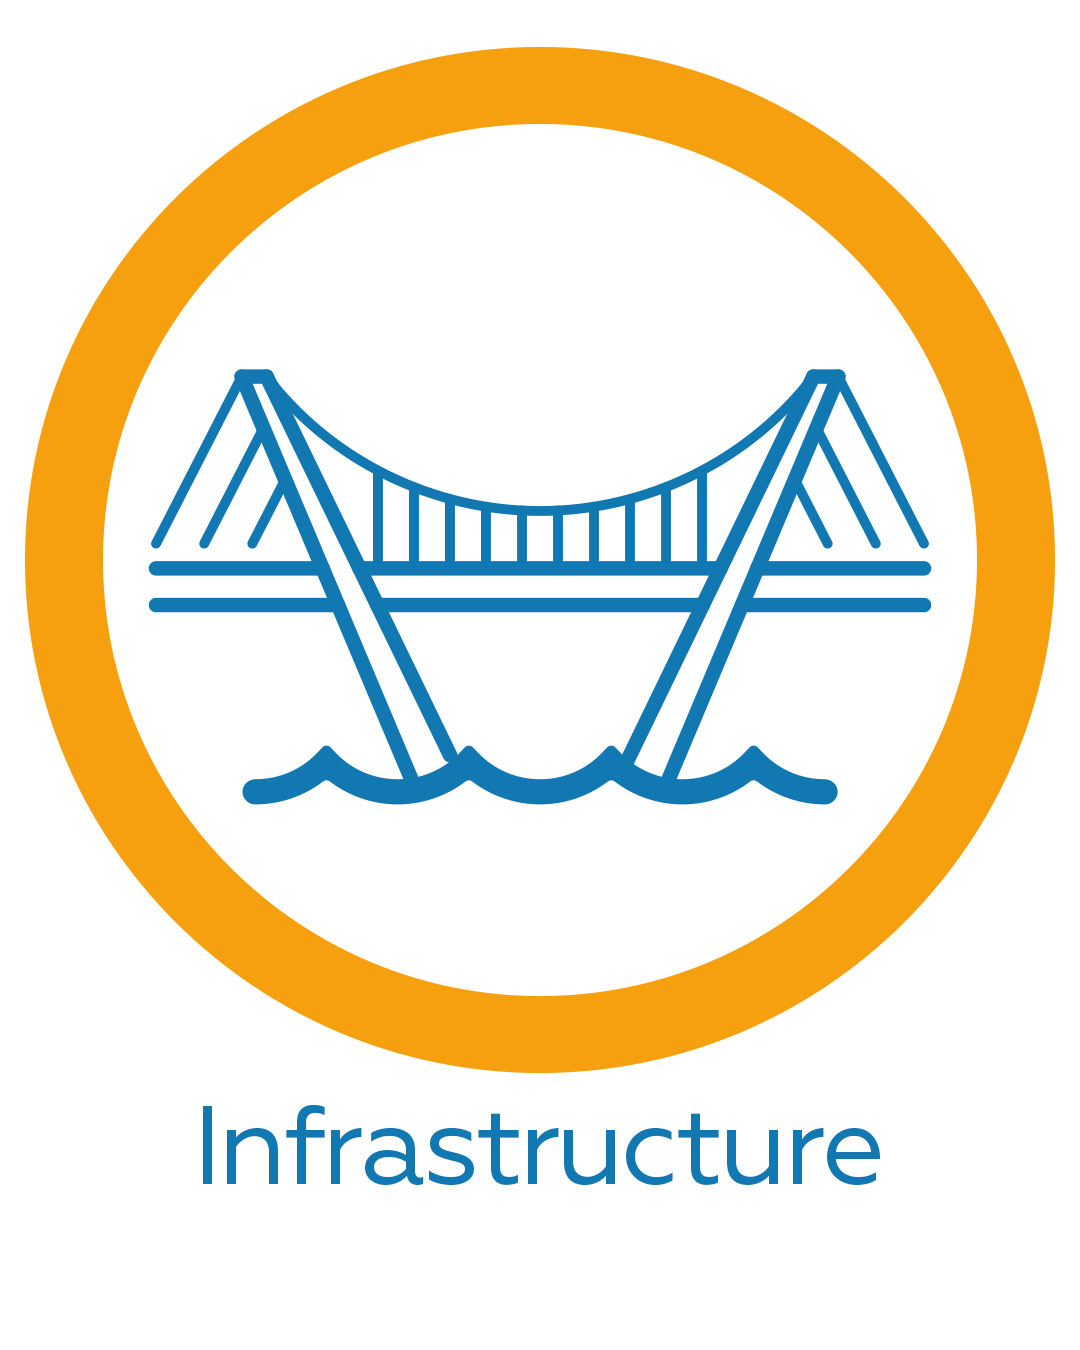 Hire infrastructure engineers within rail and construction